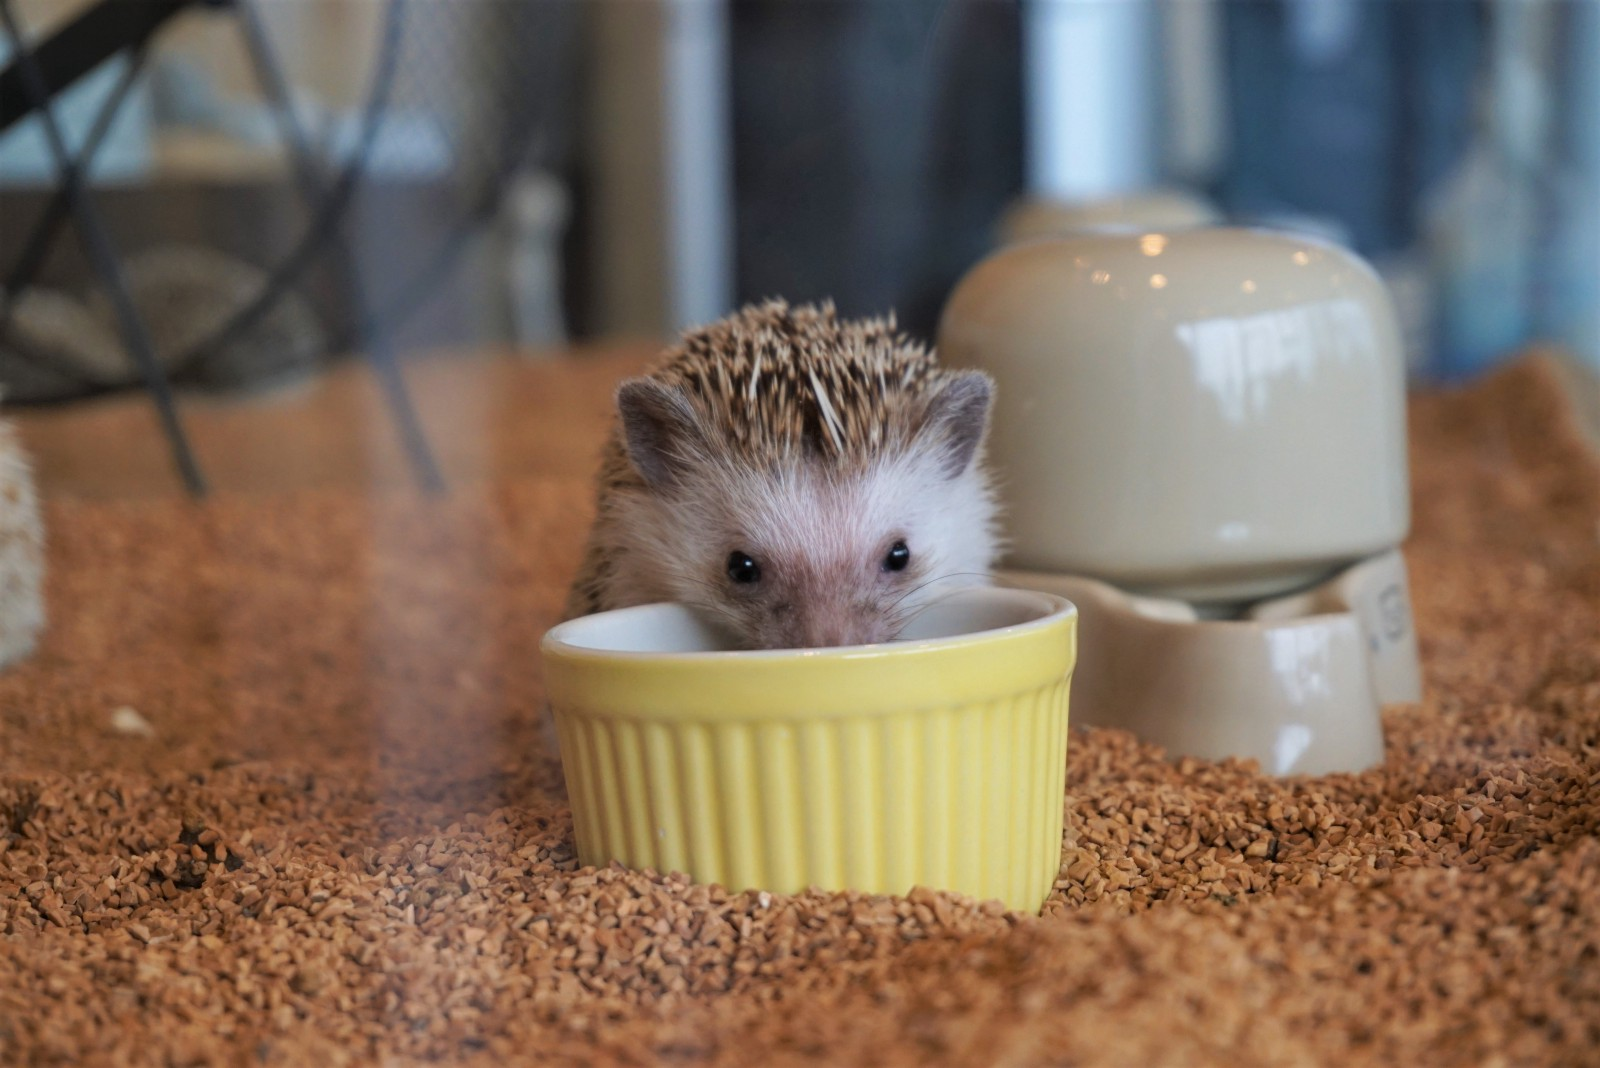 Play with Cute Hedgehogs at a Cafe